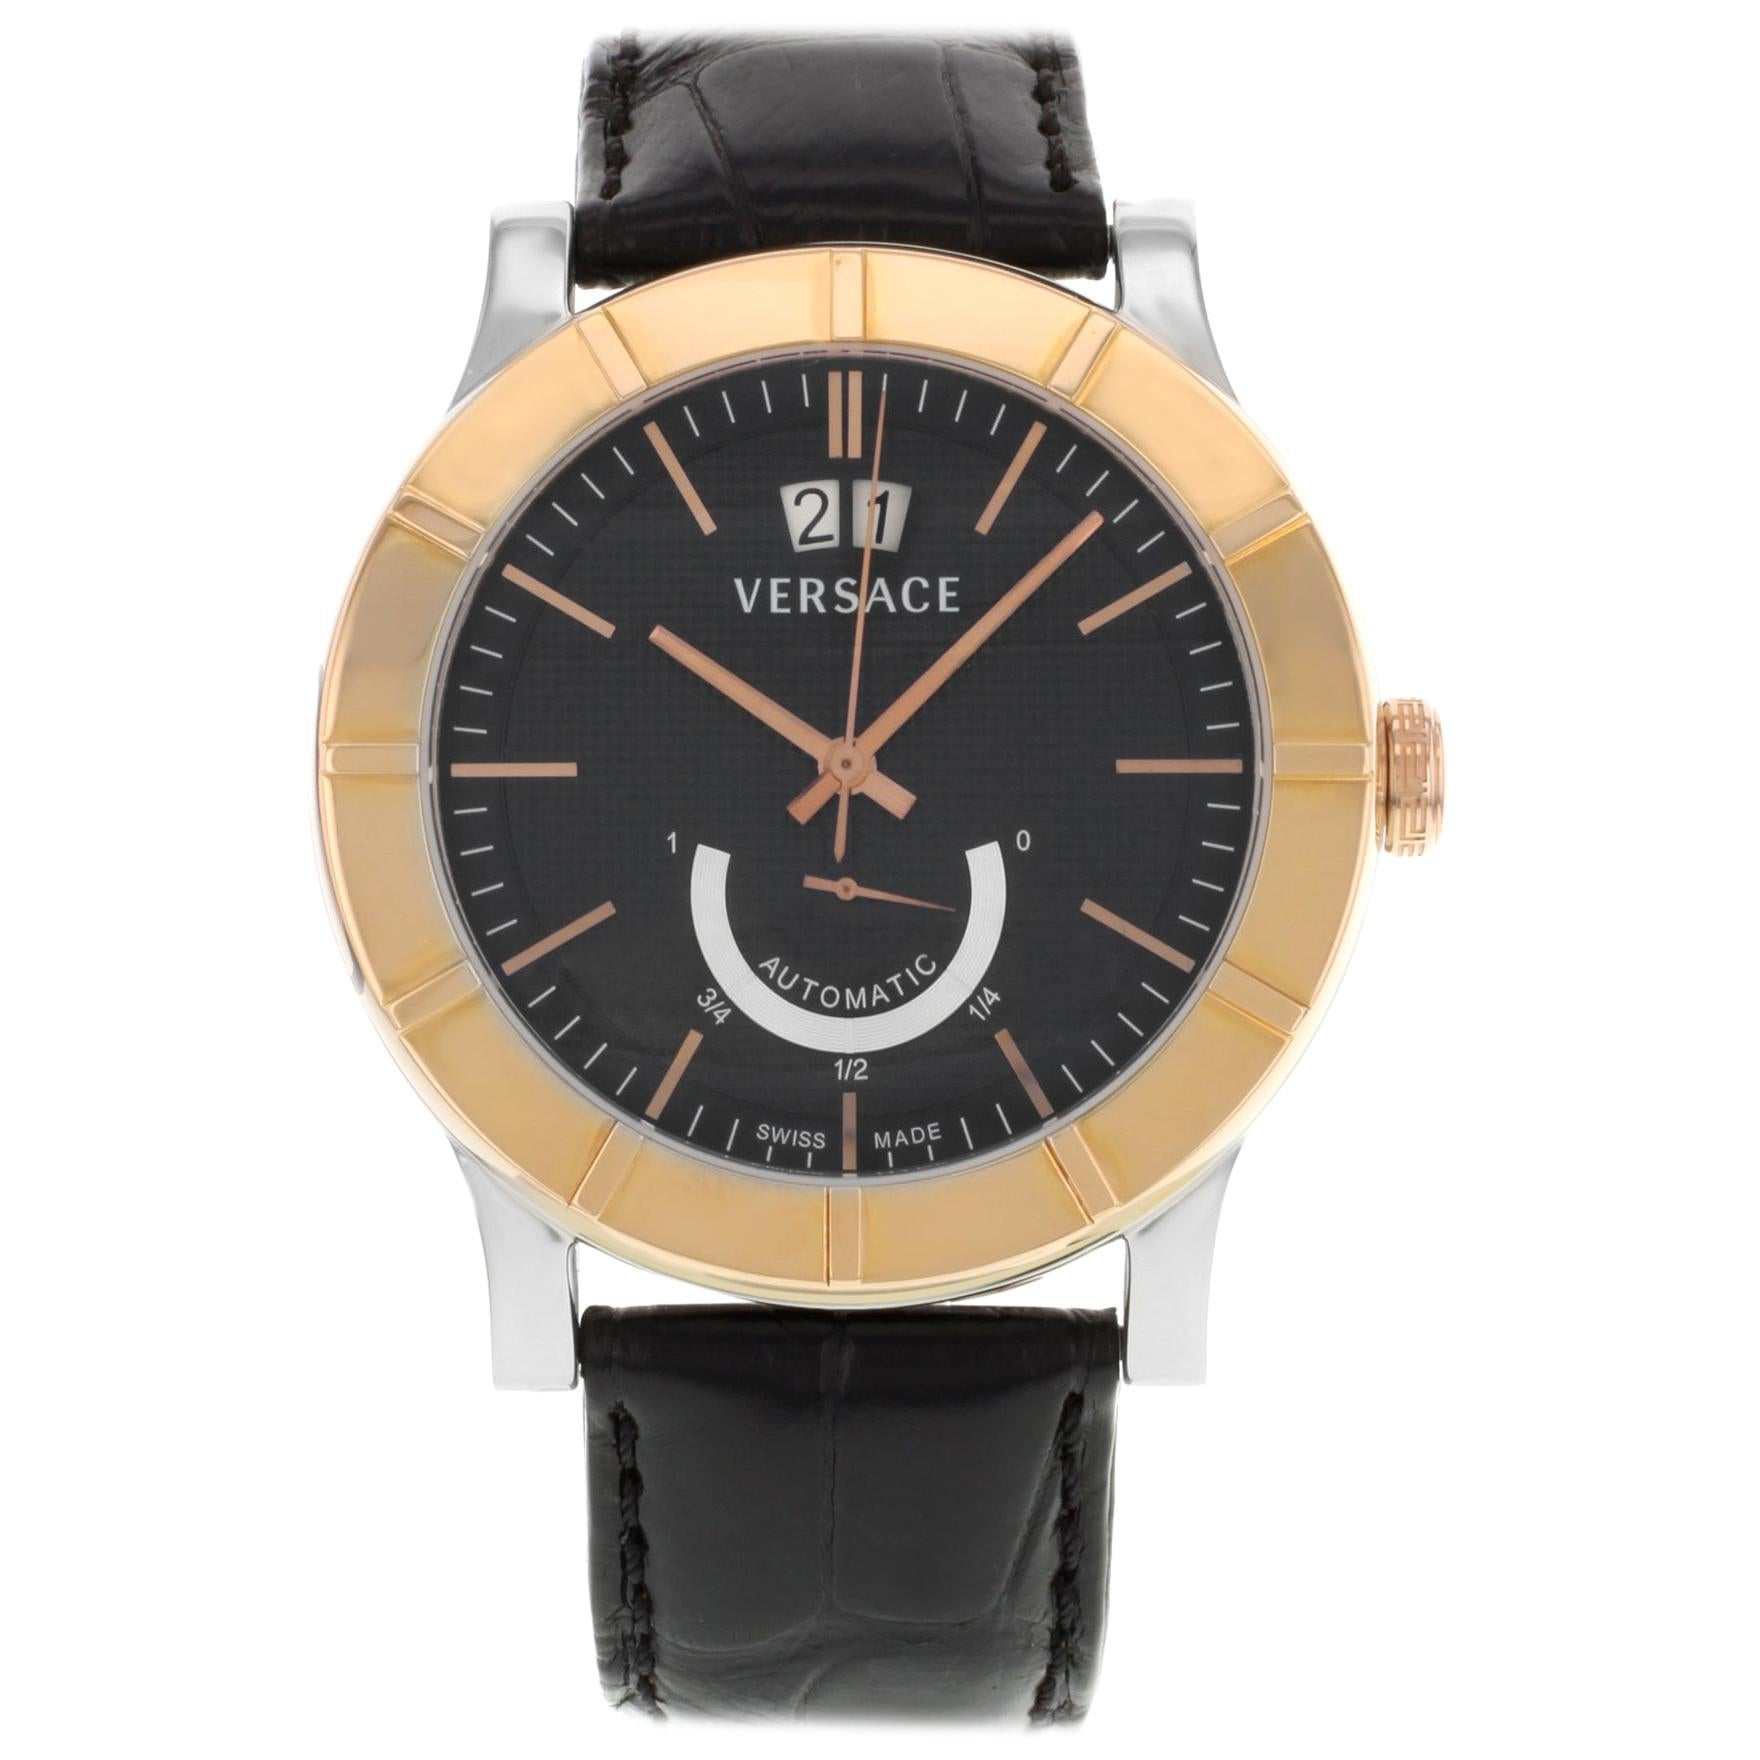 Versace Acron Big S009 18K Gold Black Dial Steel Automatic Mens Watch 18A99OD009